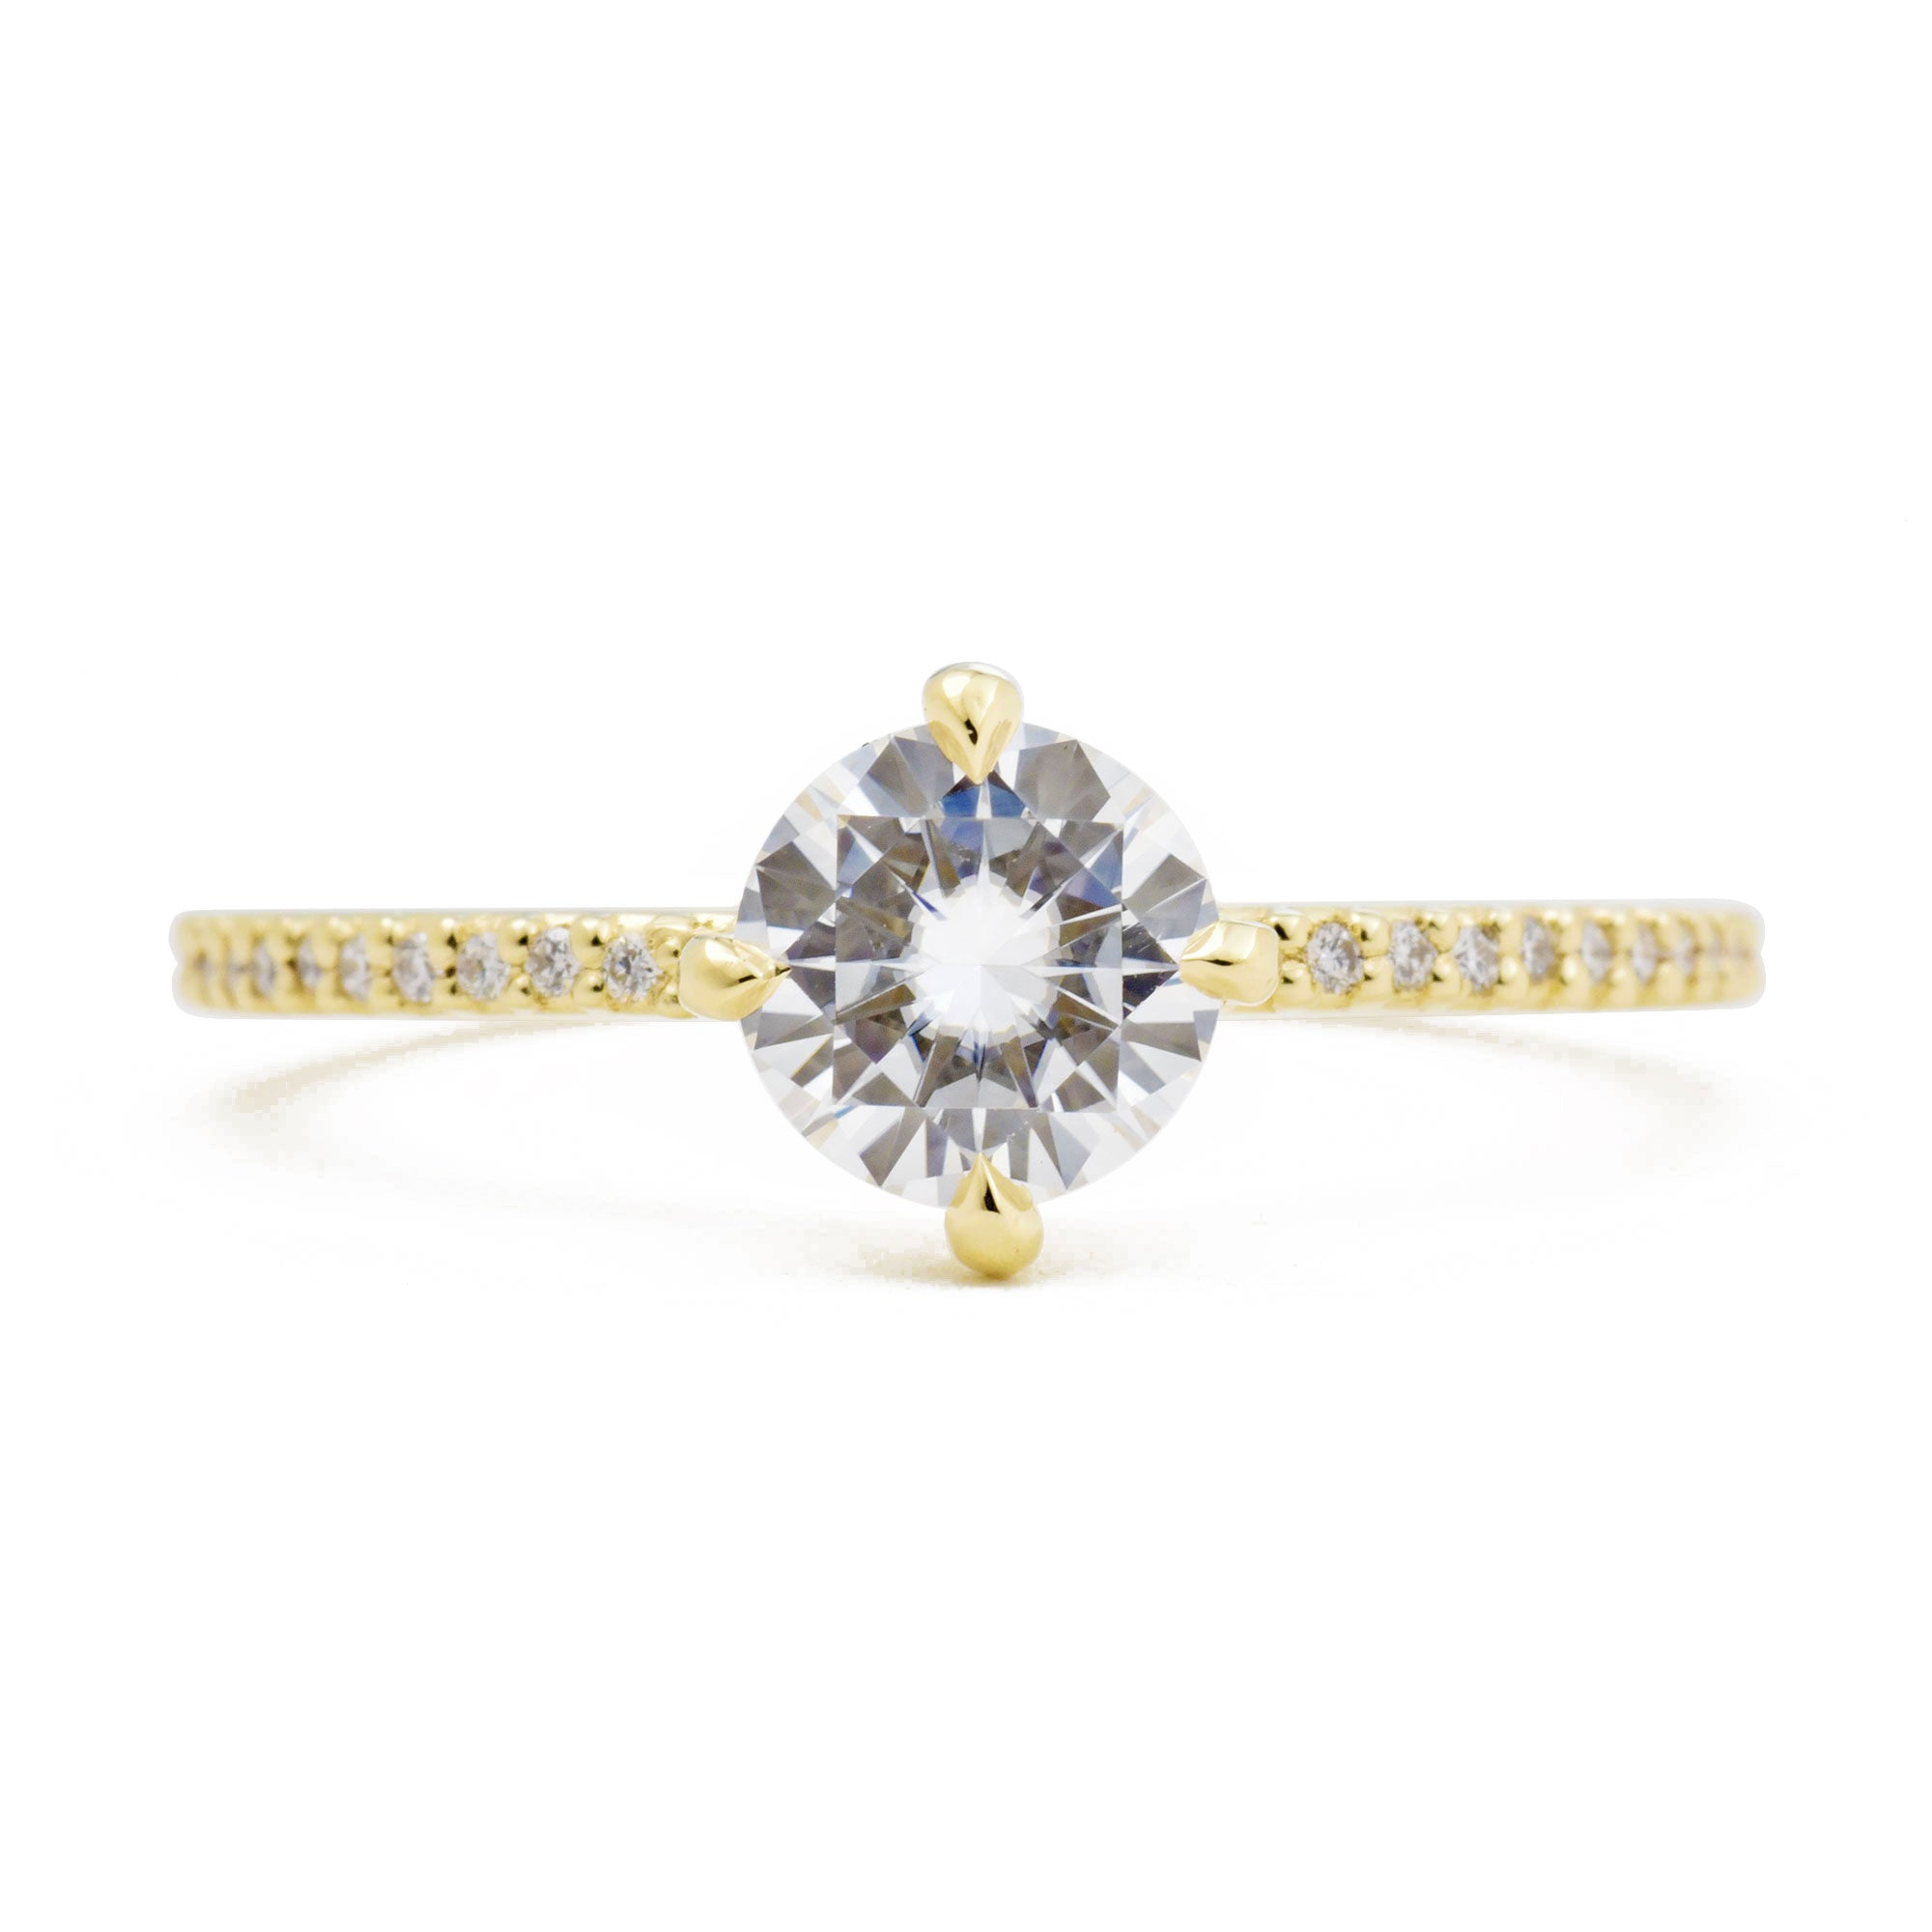 1.0ct Vera Moissanite Solitaire Engagement Ring with Pavé Diamonds